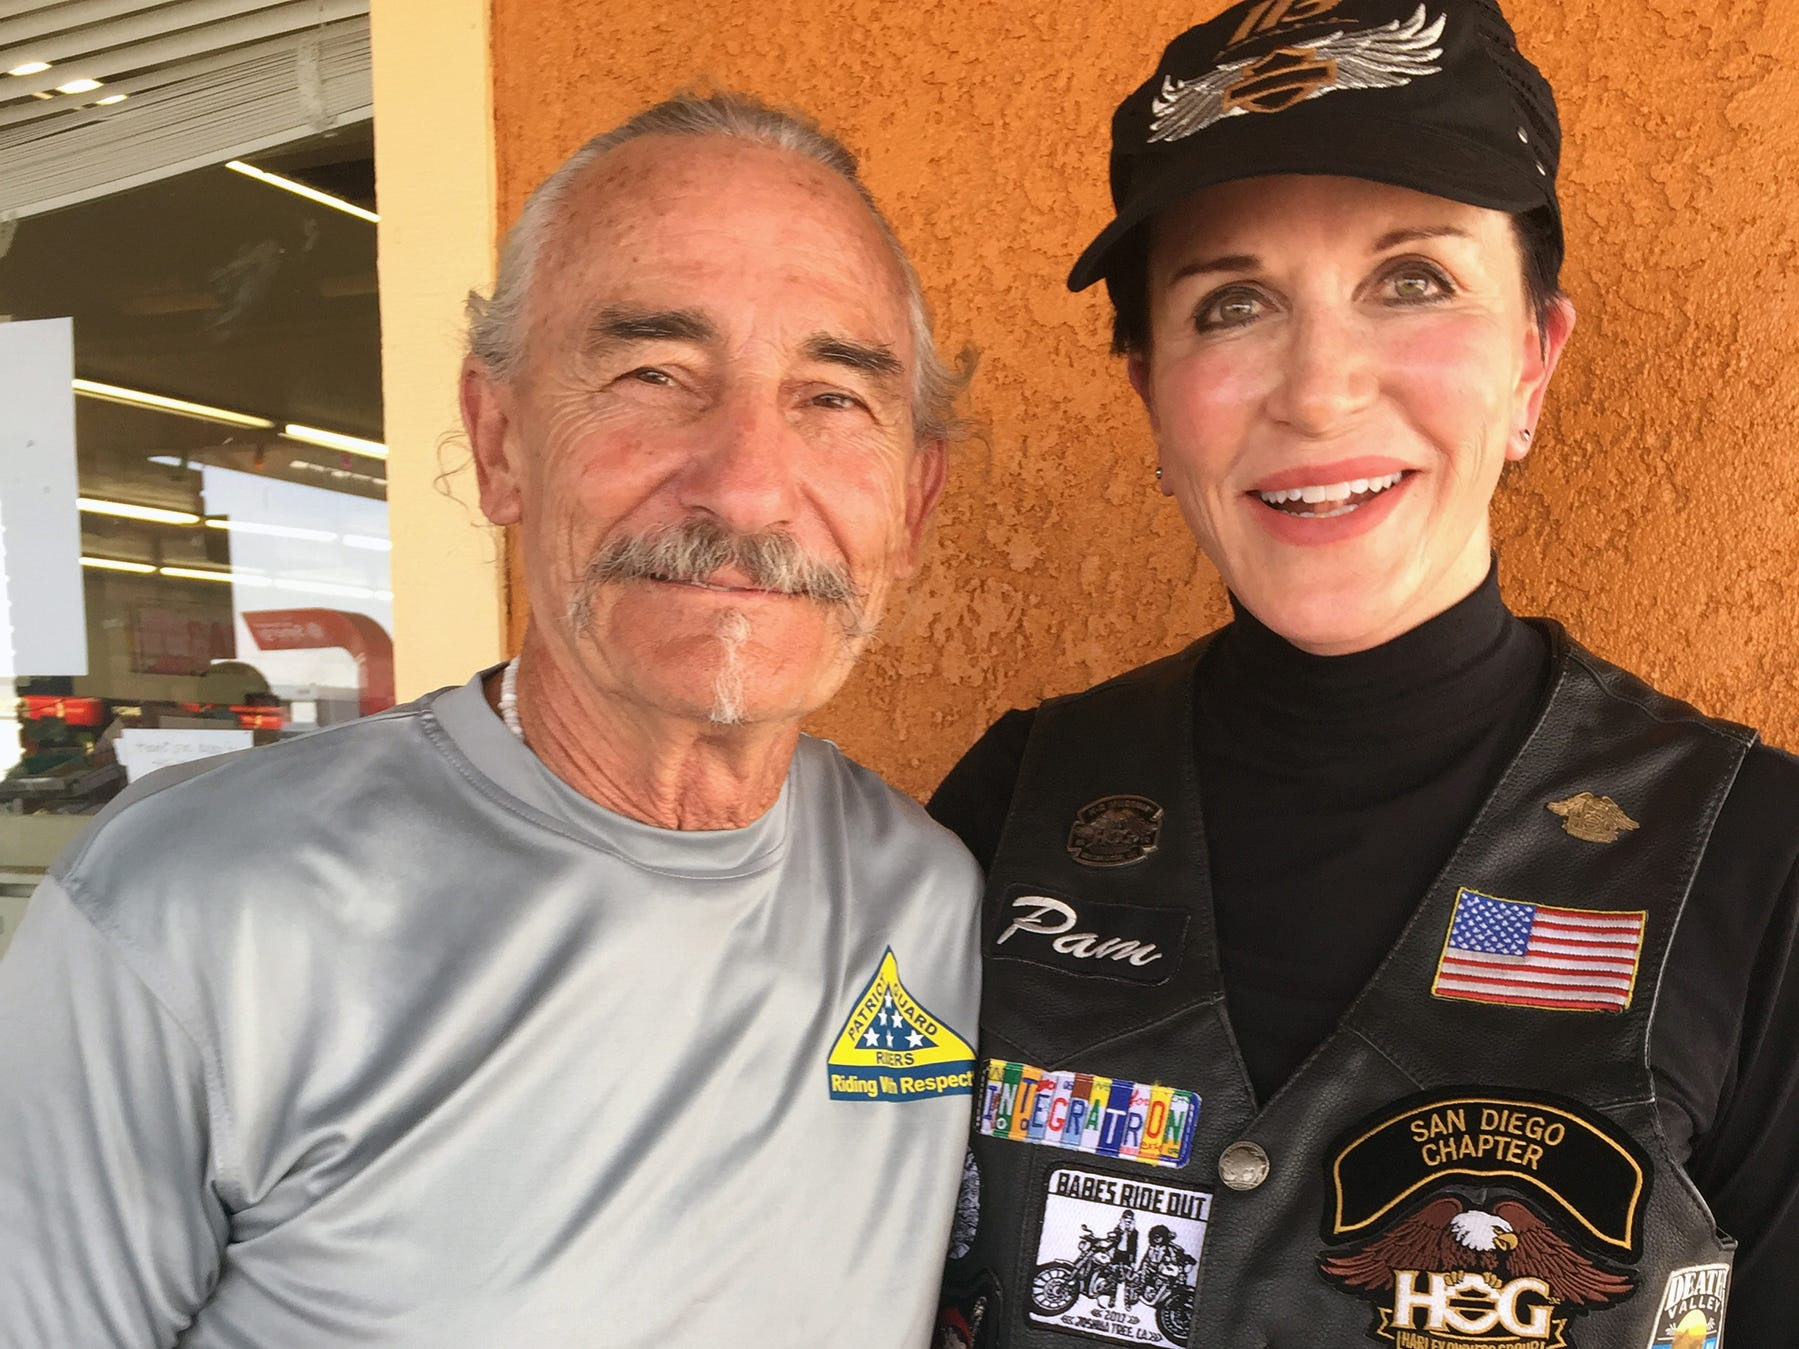 Pamela Barnett and her friend Harri Fenske of San Diego rode from San Diego to El Centro, Calif. They had planned to go to Scottsdale, Ariz., with the rest of the group but decided to return after hearing about possible bad weather in Arizona.